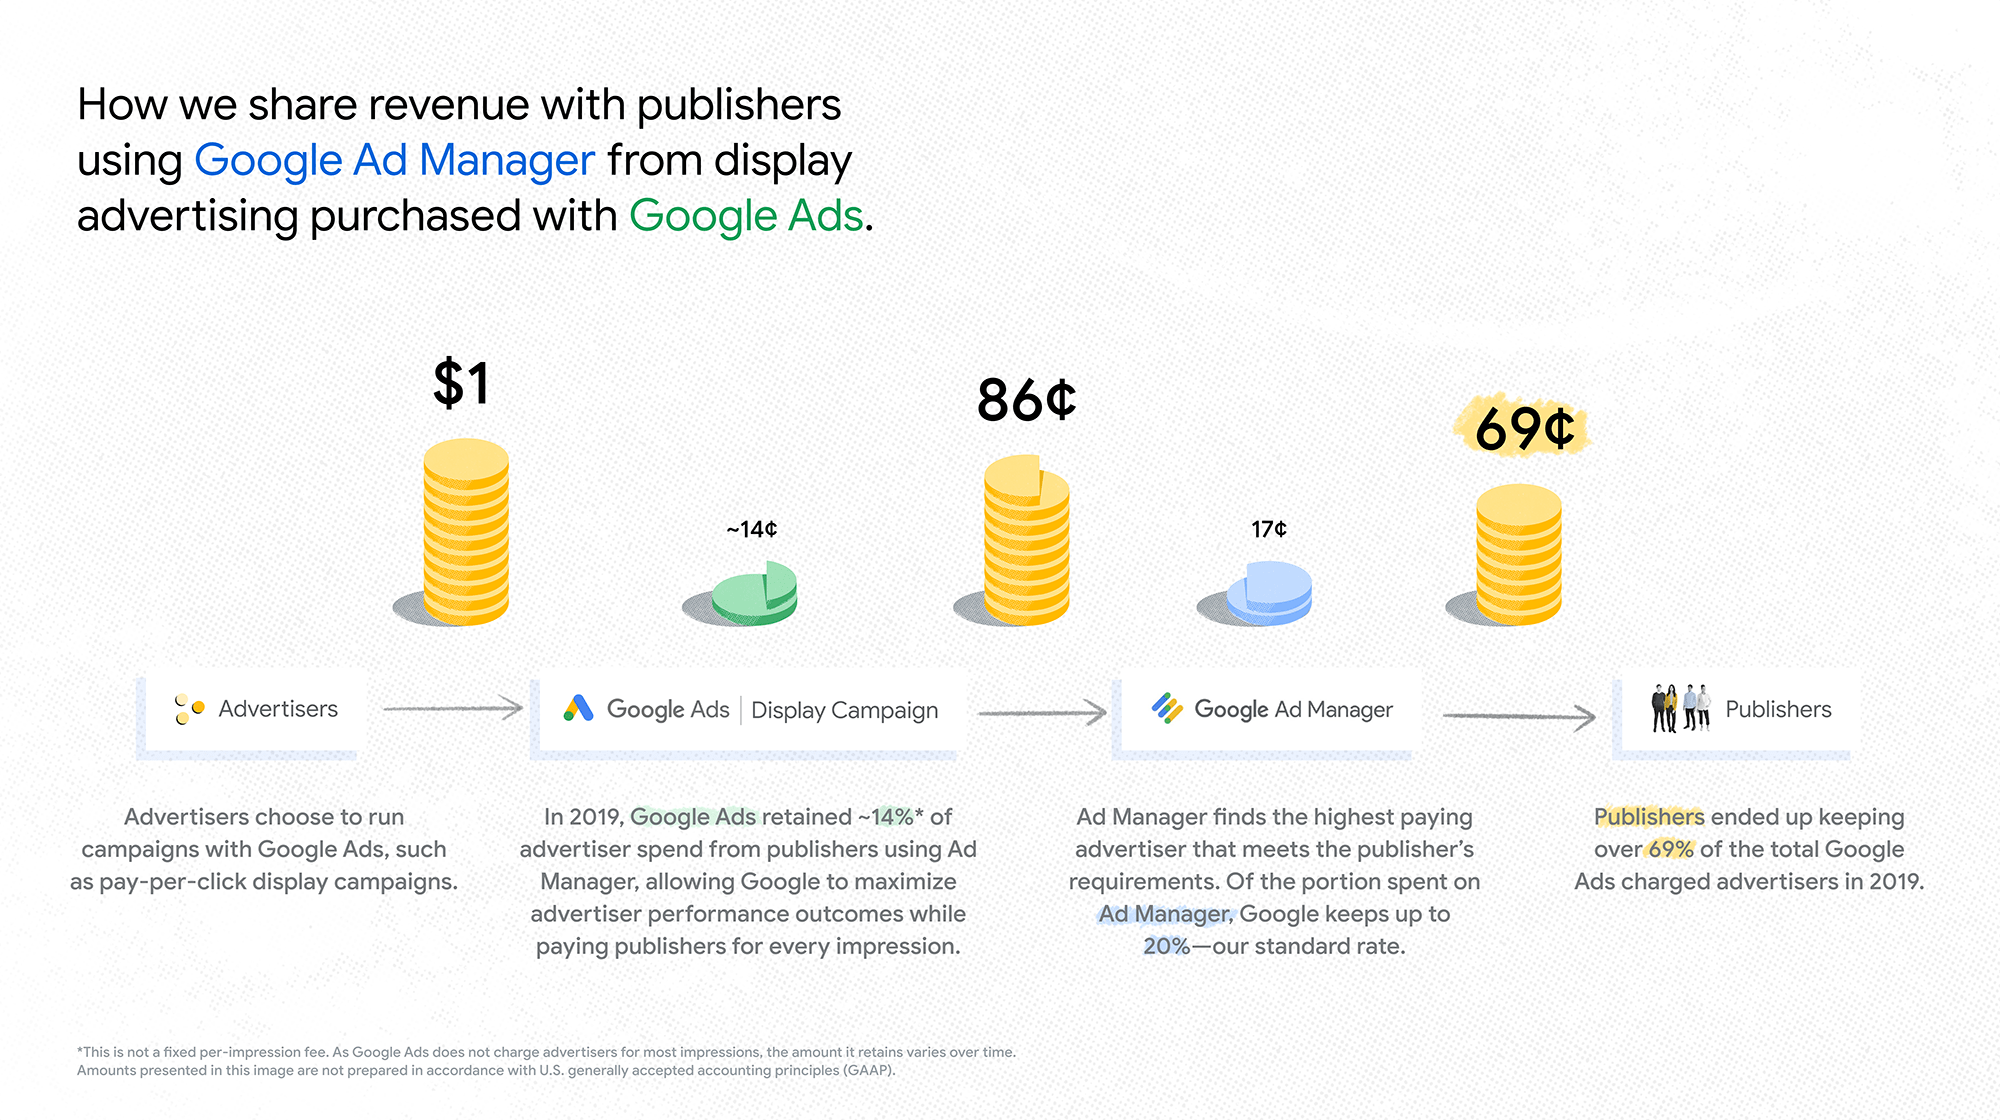 Google fee structure - Google ads to Google ad manager